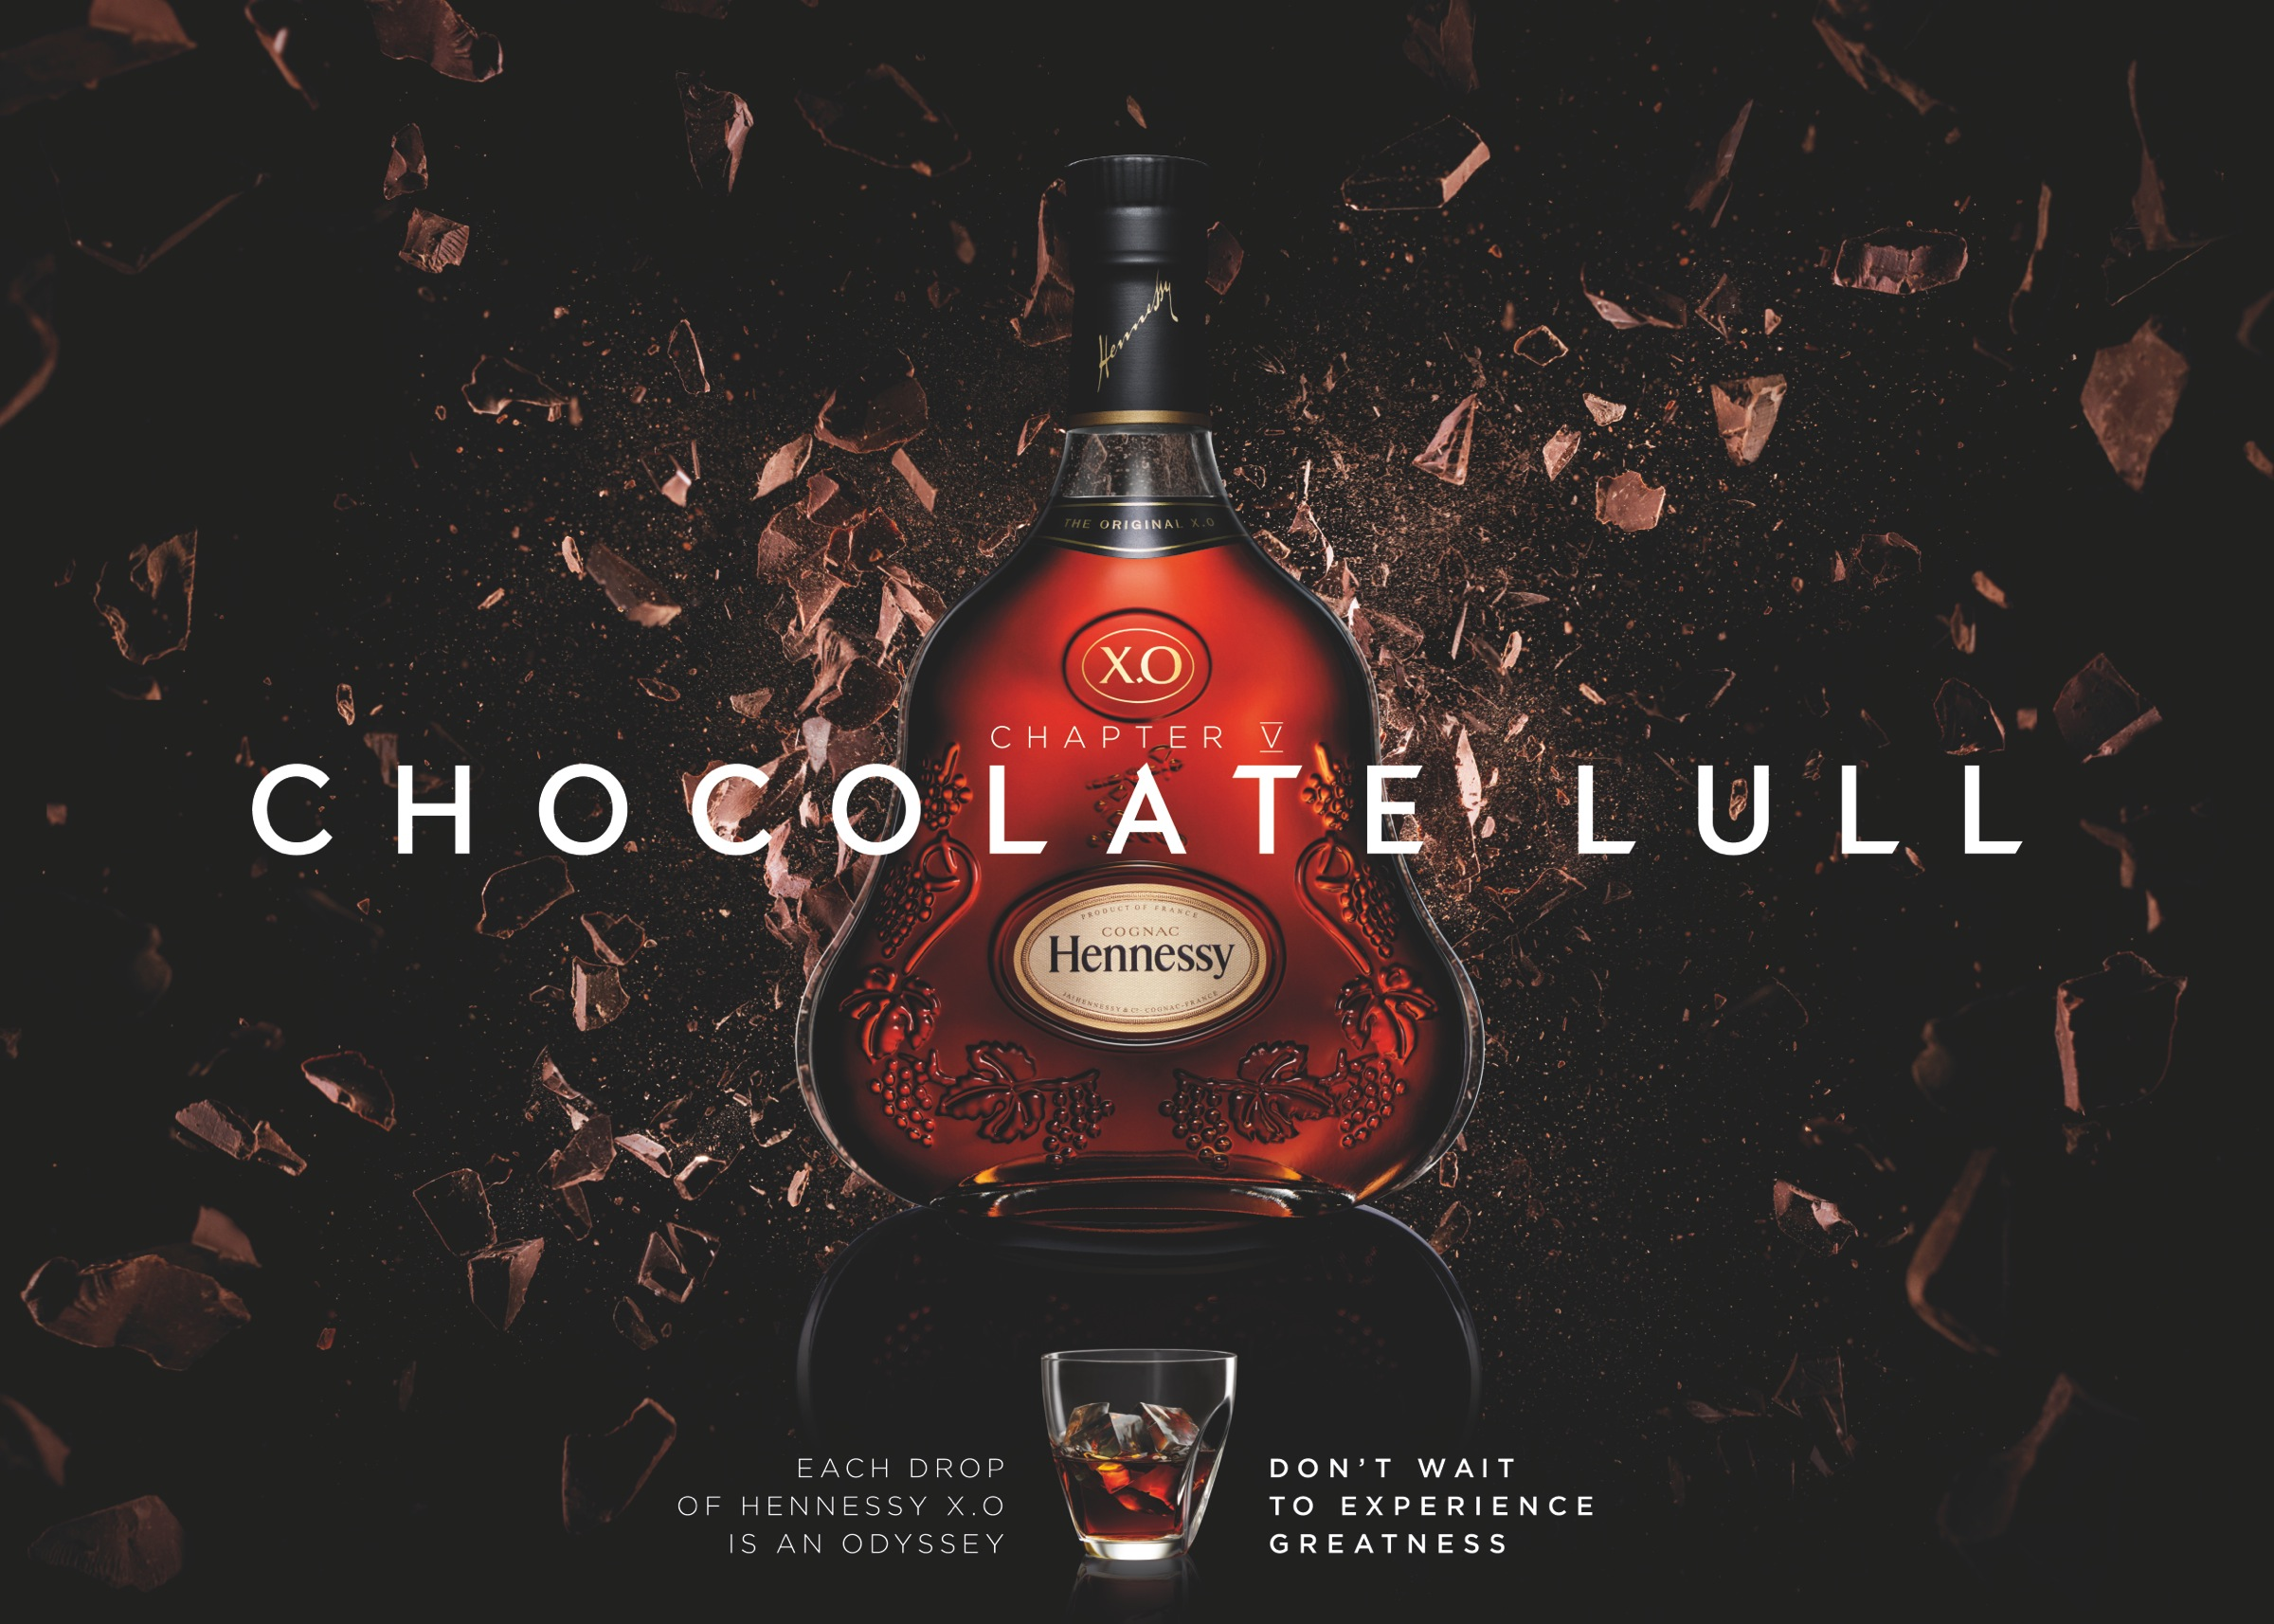 hennessy-xo-cognac-odyssey-ads-marketing-publicite-agence-ddb-paris-2